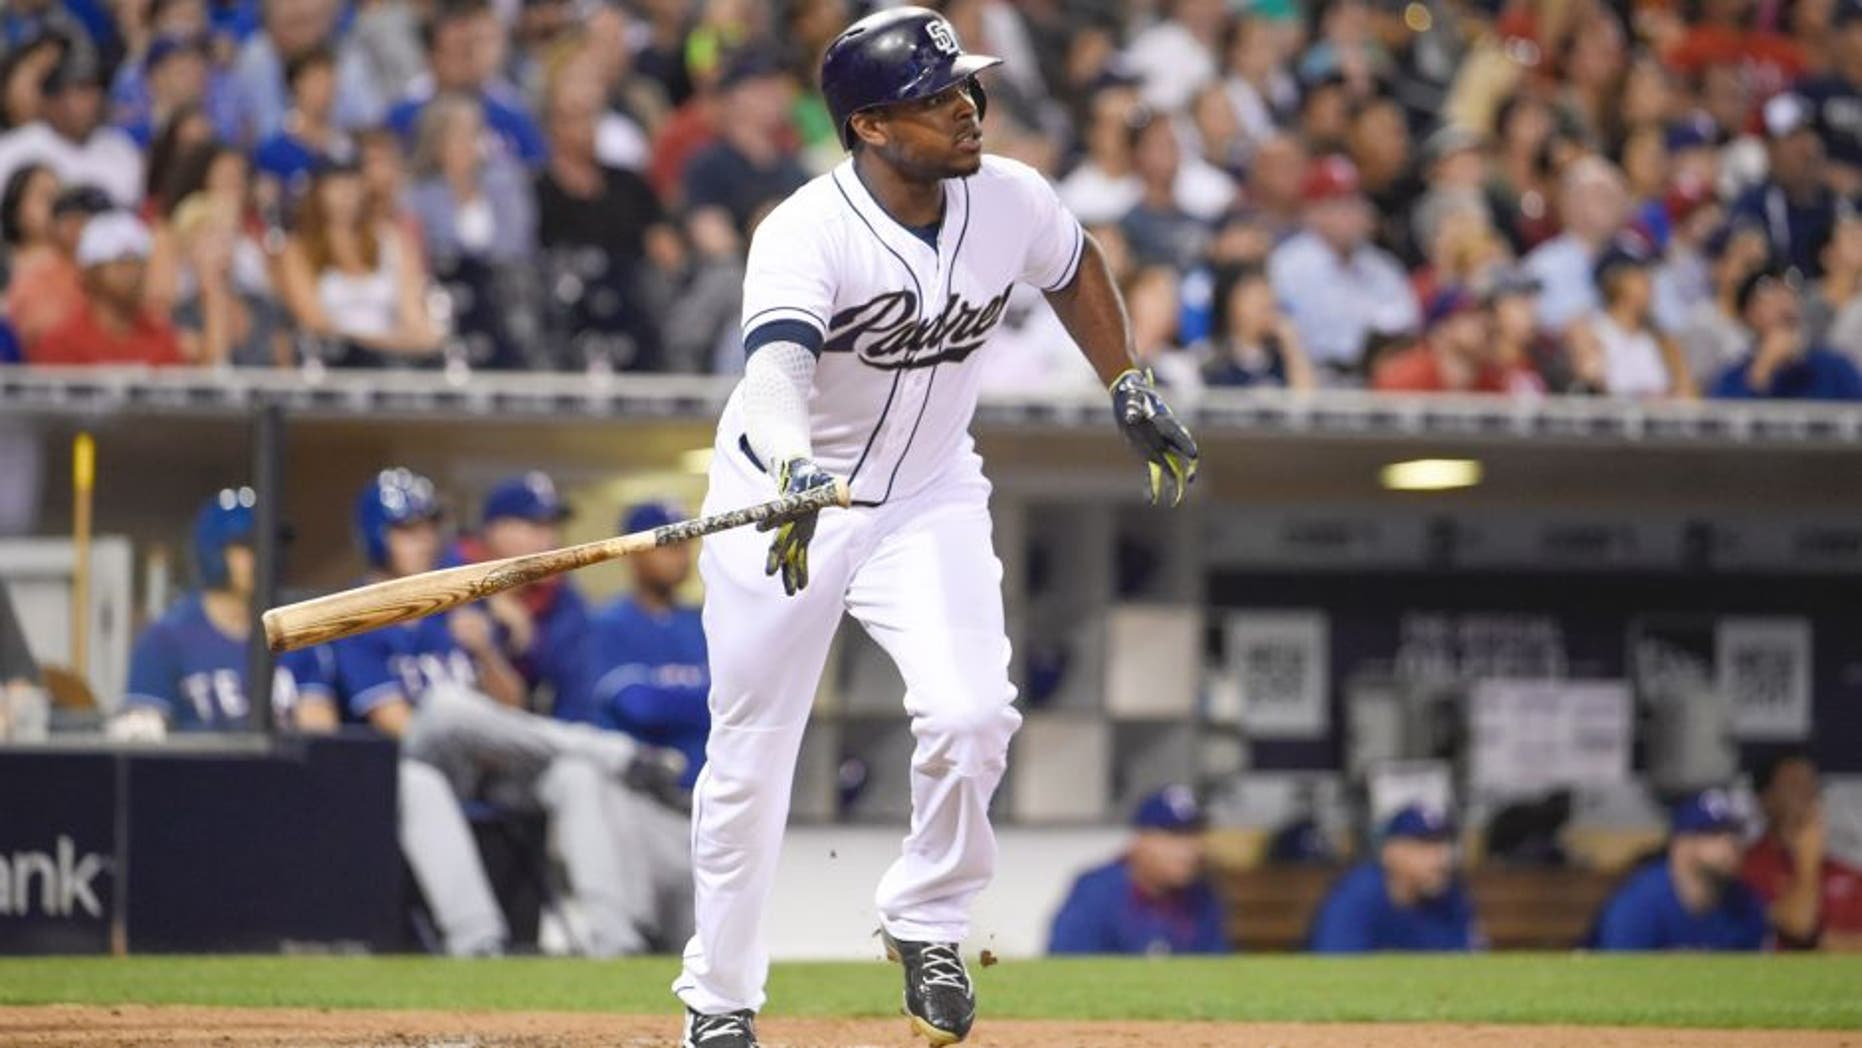 SAN DIEGO, CA - AUGUST 31: Justin Upton #10 of the San Diego Padres plays during a baseball game against the Texas Rangers at Petco Park August, 31, 2015 in San Diego, California. (Photo by Denis Poroy/Getty Images)